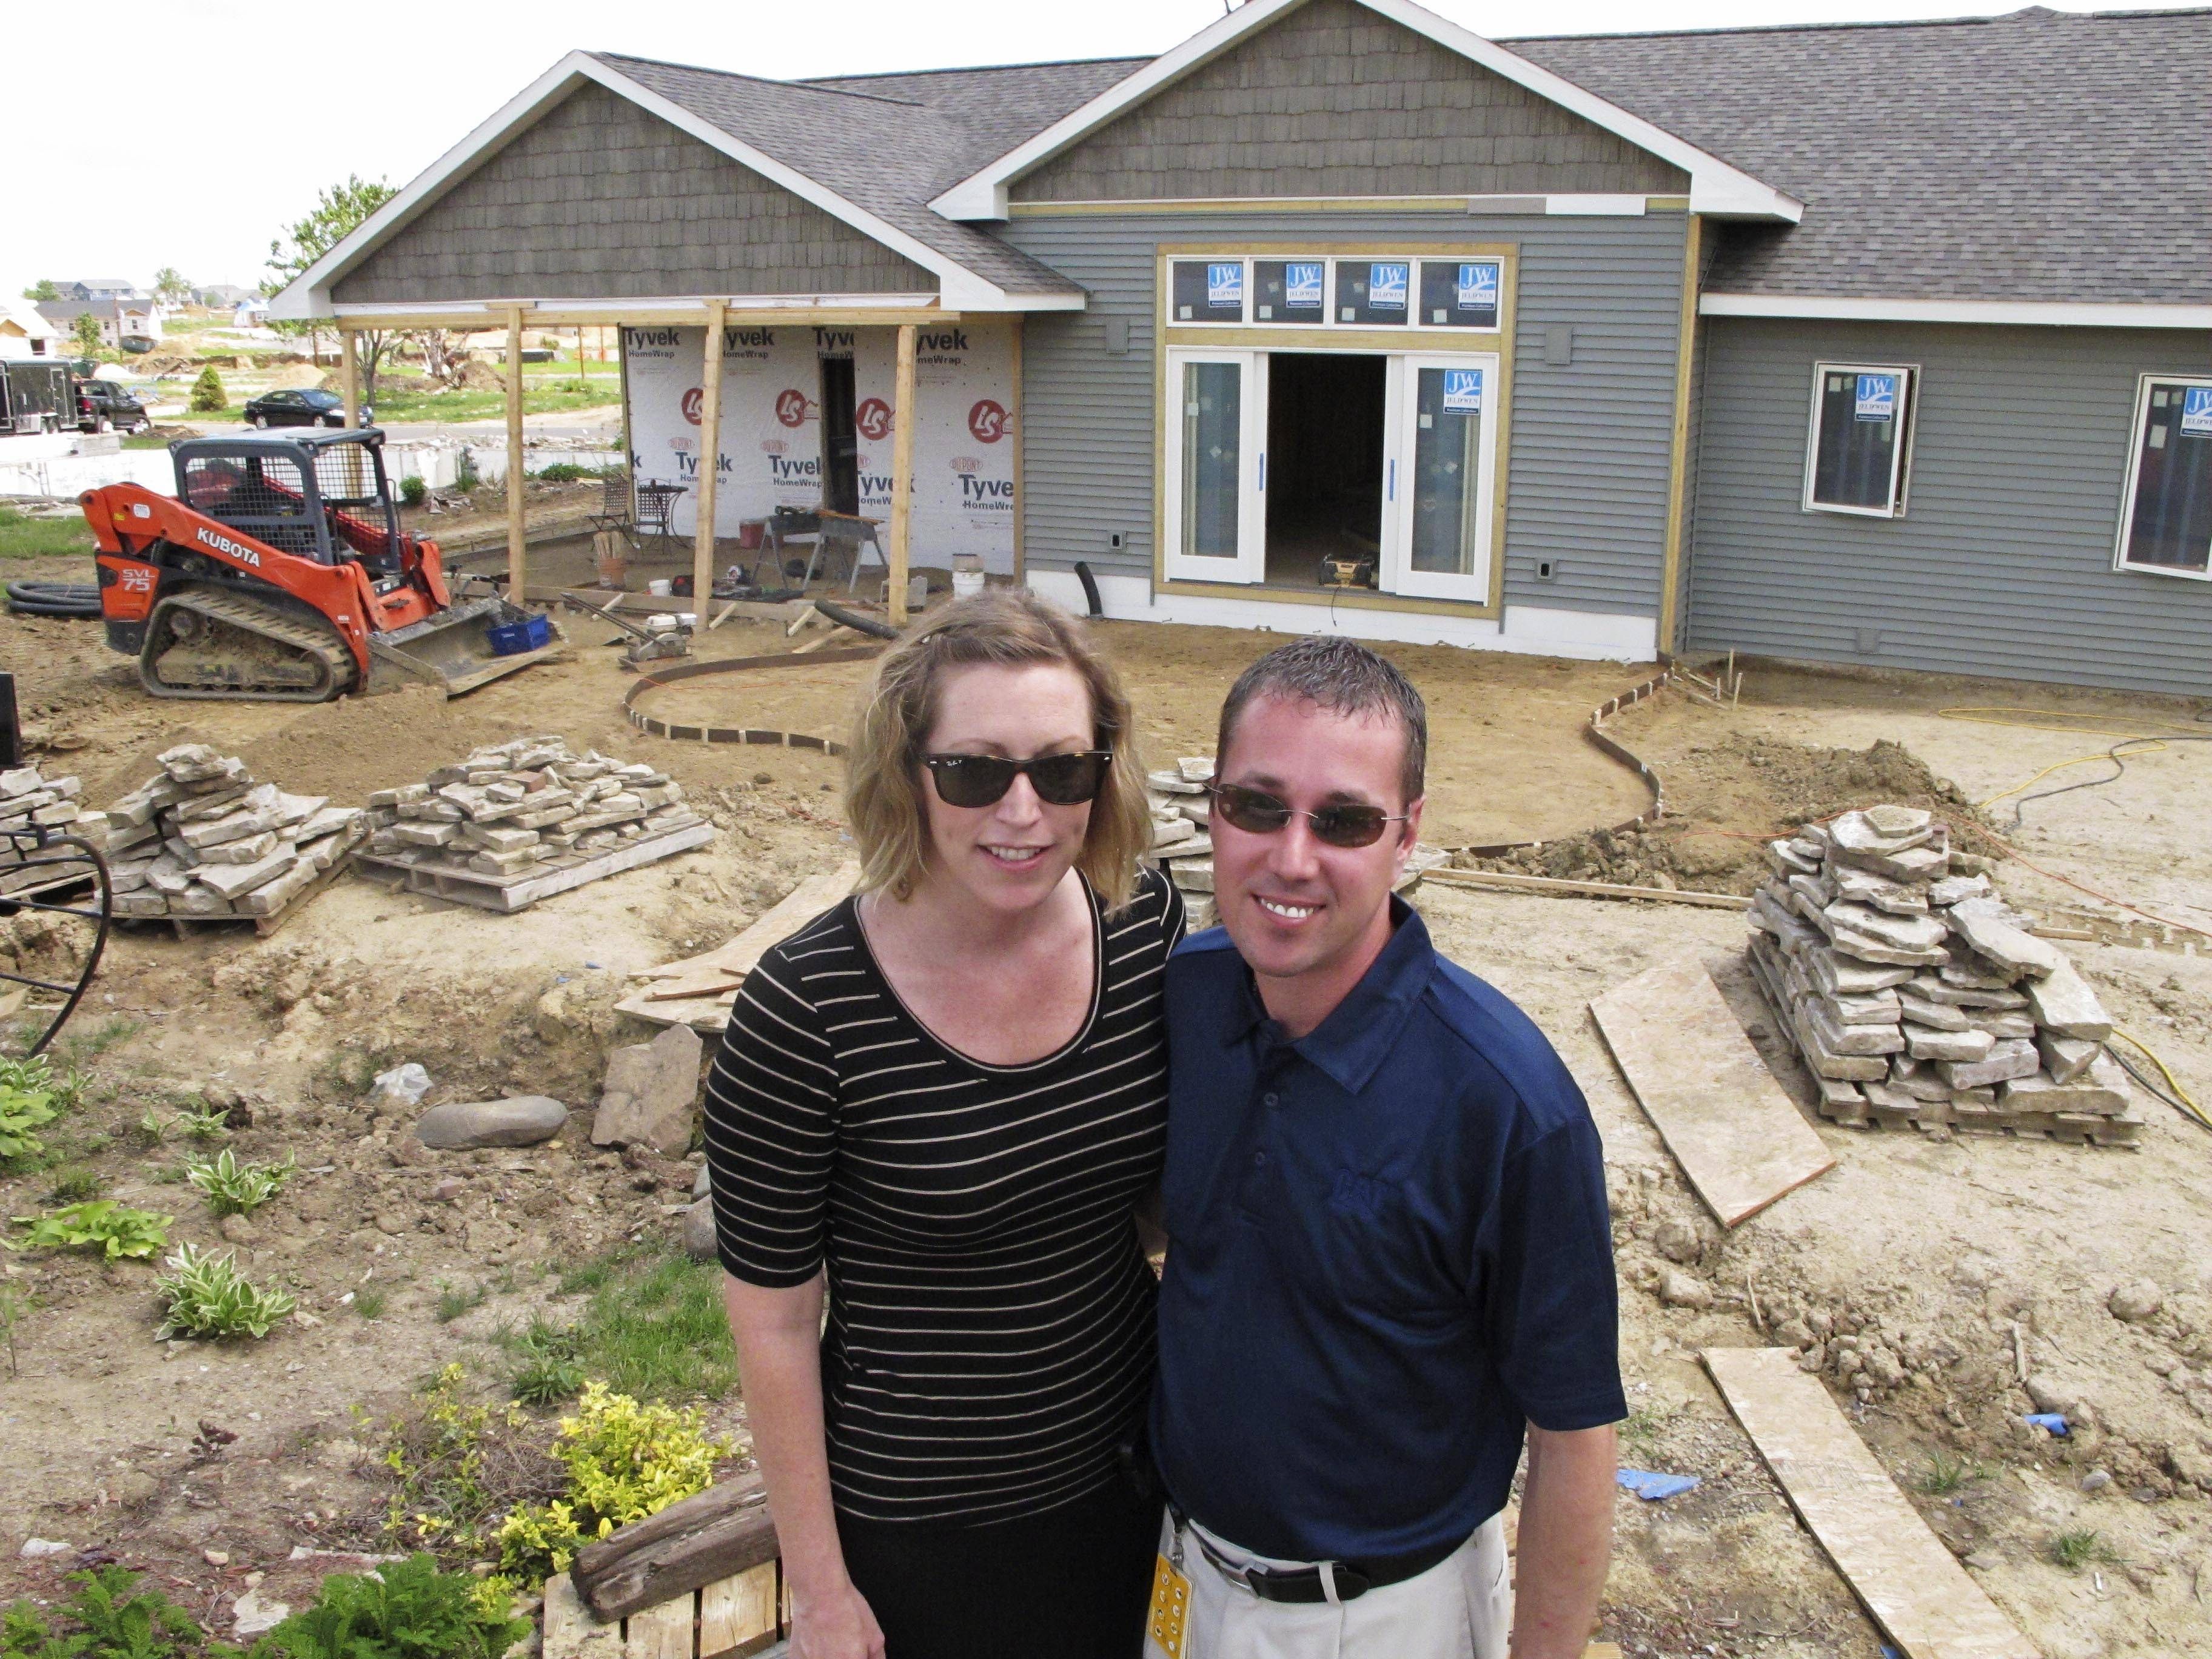 In this May 28 photo, Jamie and Daniel Cobb pose in the backyard of the their home, now being rebuilt, in Washington, Ill. The Cobbs had lived in their house less than a year when it was destroyed by a tornado in November 2013. The couple expect to be able to move back in within a few months.